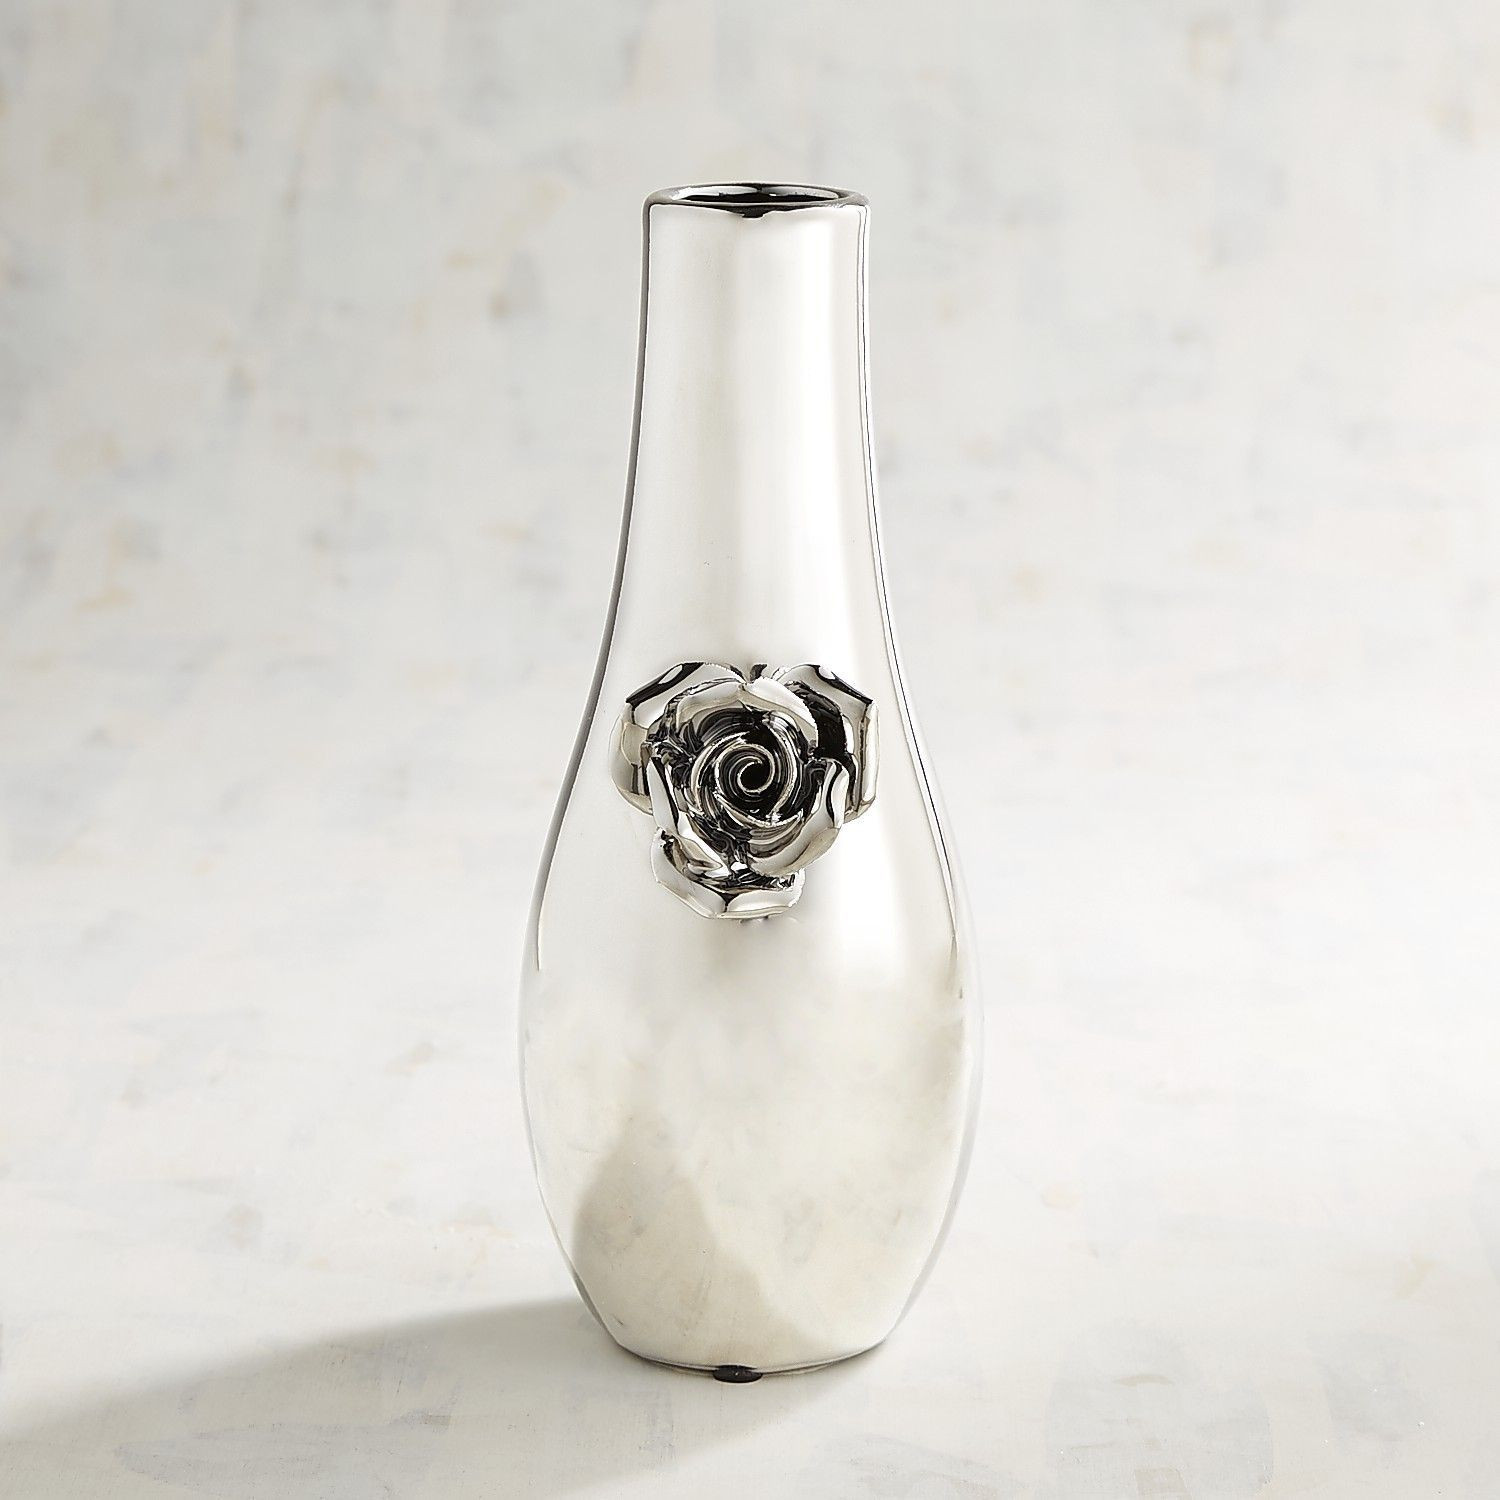 elegant expressions by hosley vase of pics of silver bud vases vases artificial plants collection intended for silver bud vases collection silver bud vase with flower pinterest of pics of silver bud vases